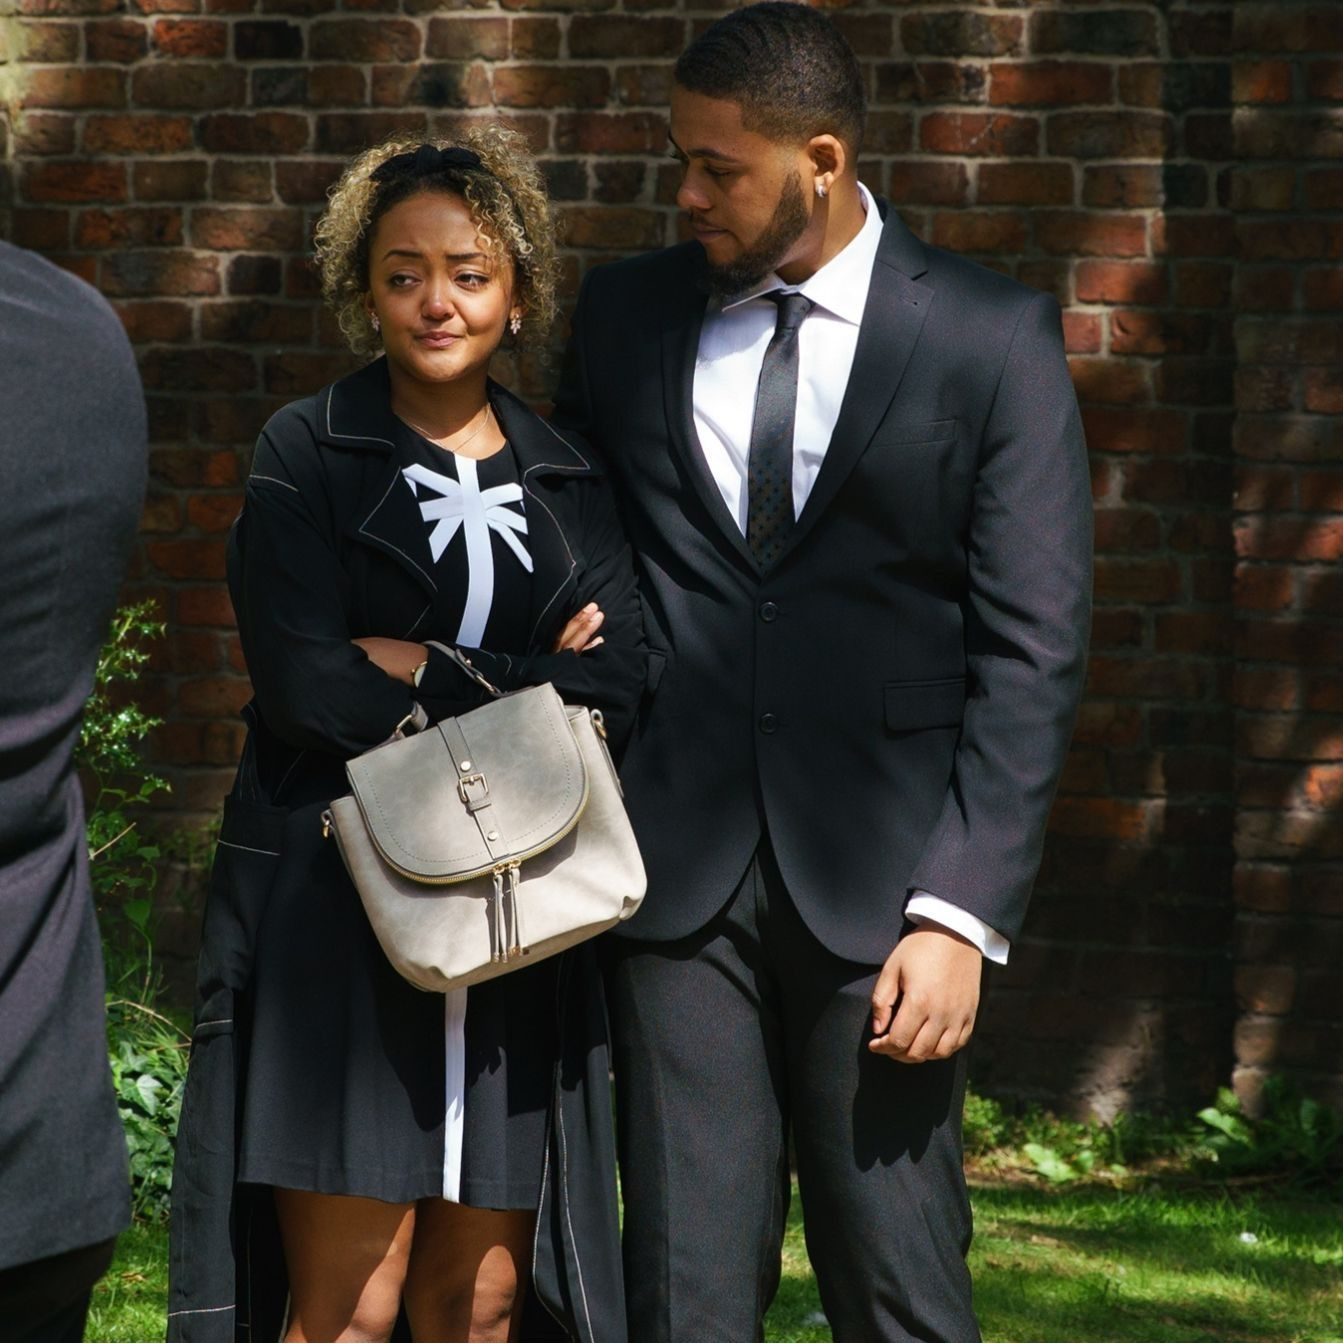 Coronation Street funeral drama revealed and 9 more big soap moments ahead this week